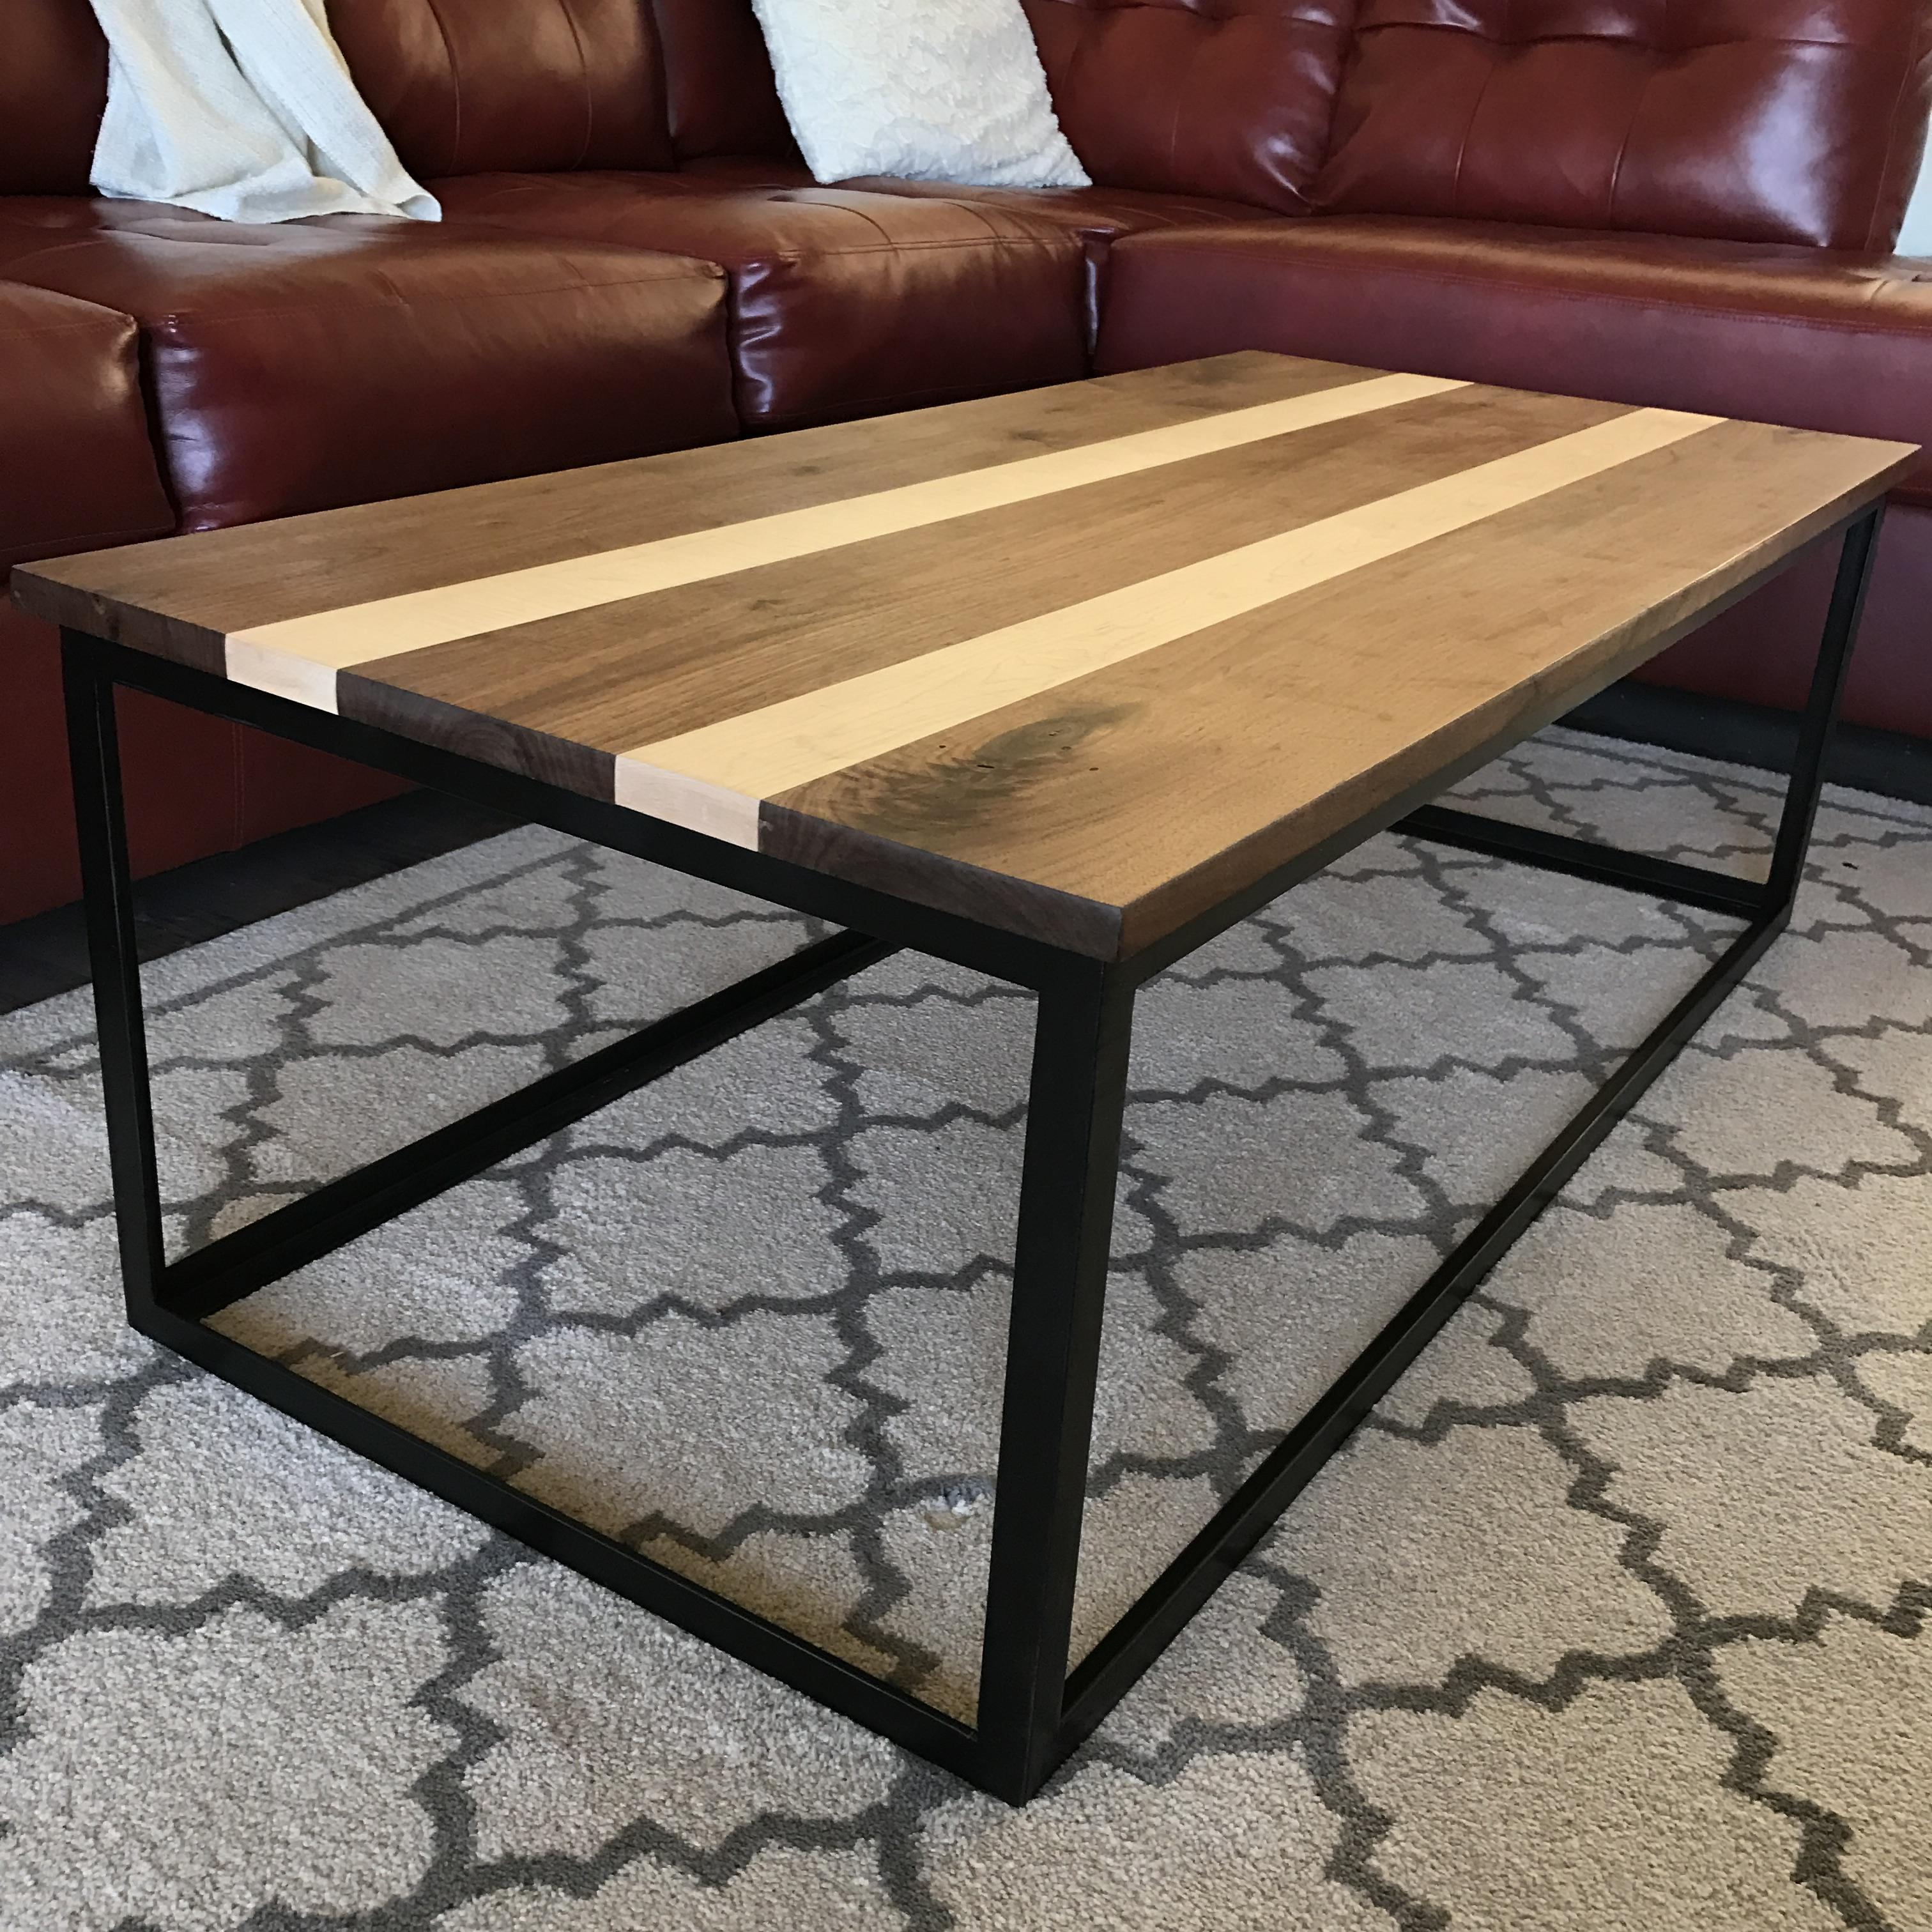 Picture of Coffee Table - Walnut, Maple and Steel